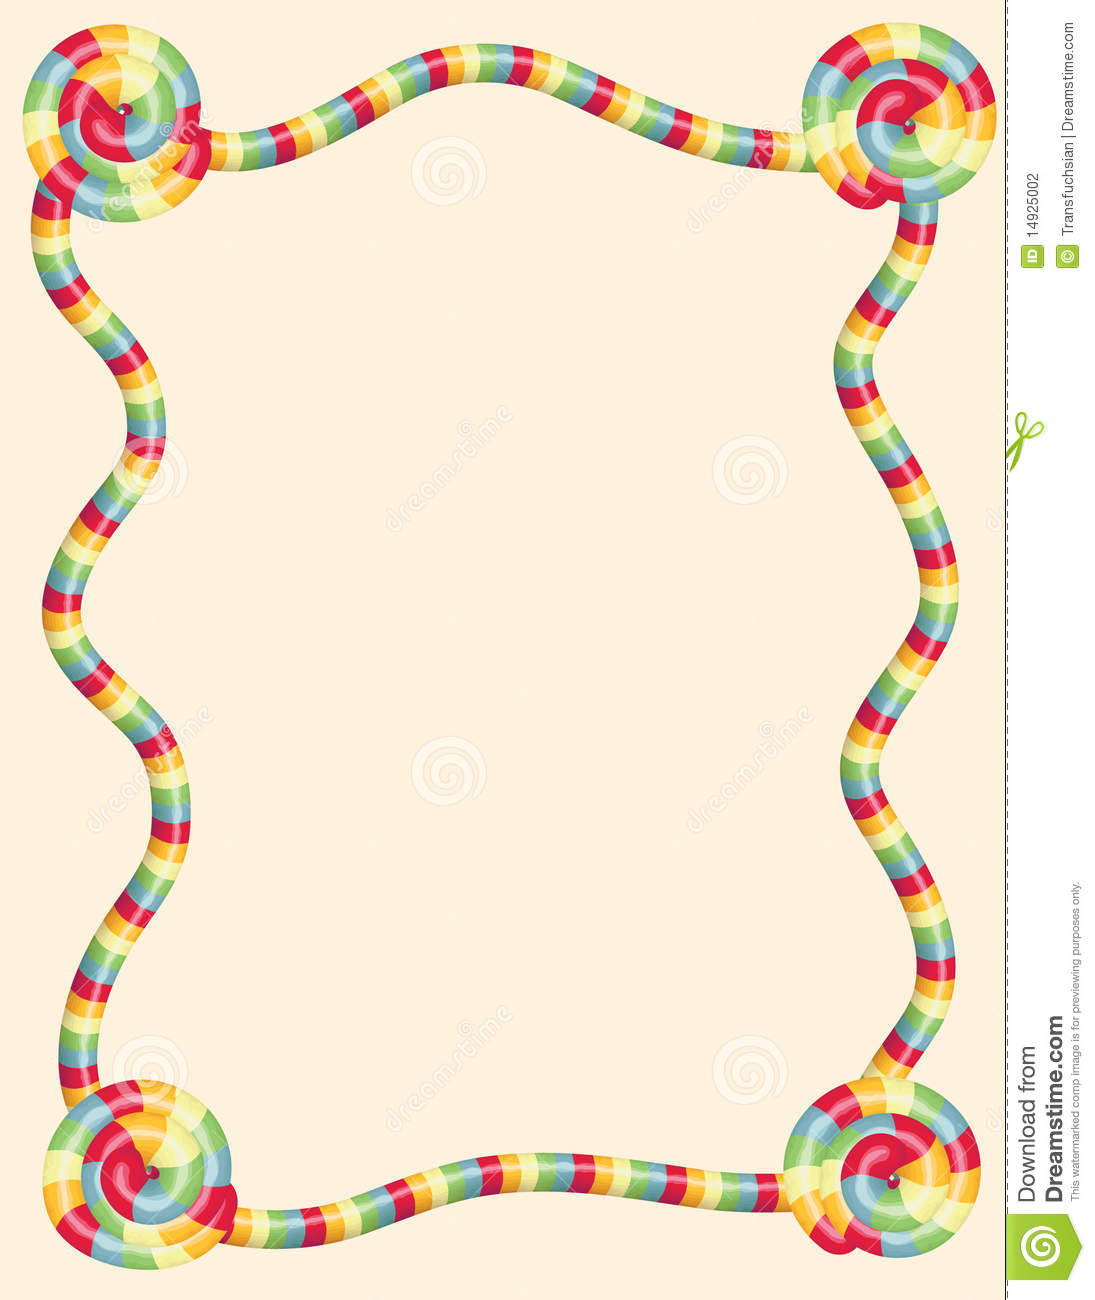 Free Clipart Candyland Game.